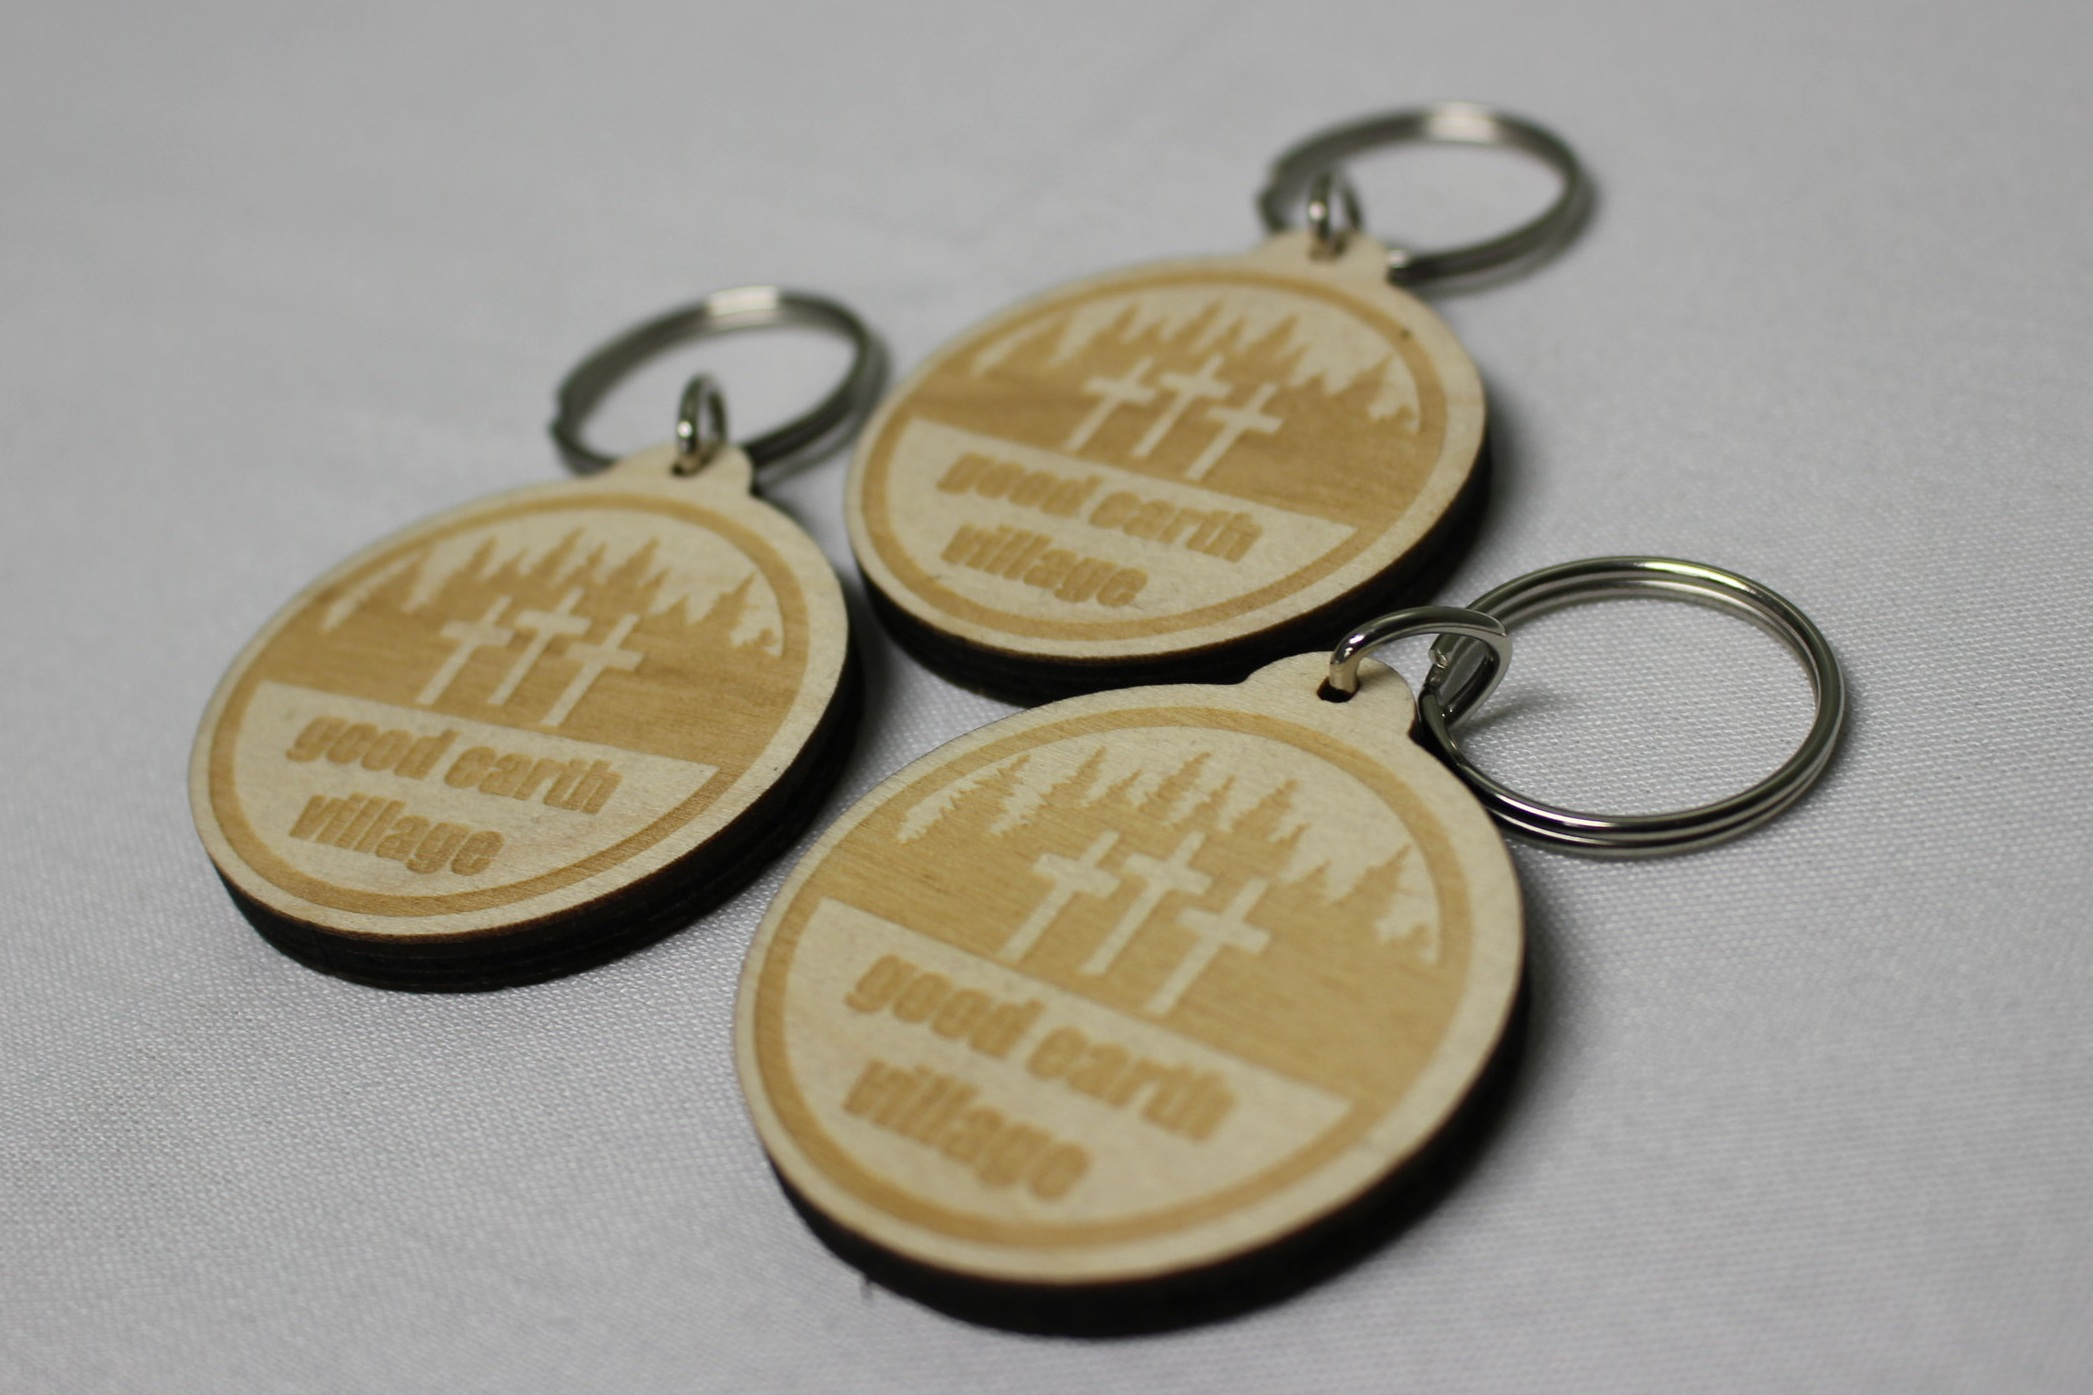 Item:  3 Crosses Laser Etched Wooden Key Chain   Price:  $7